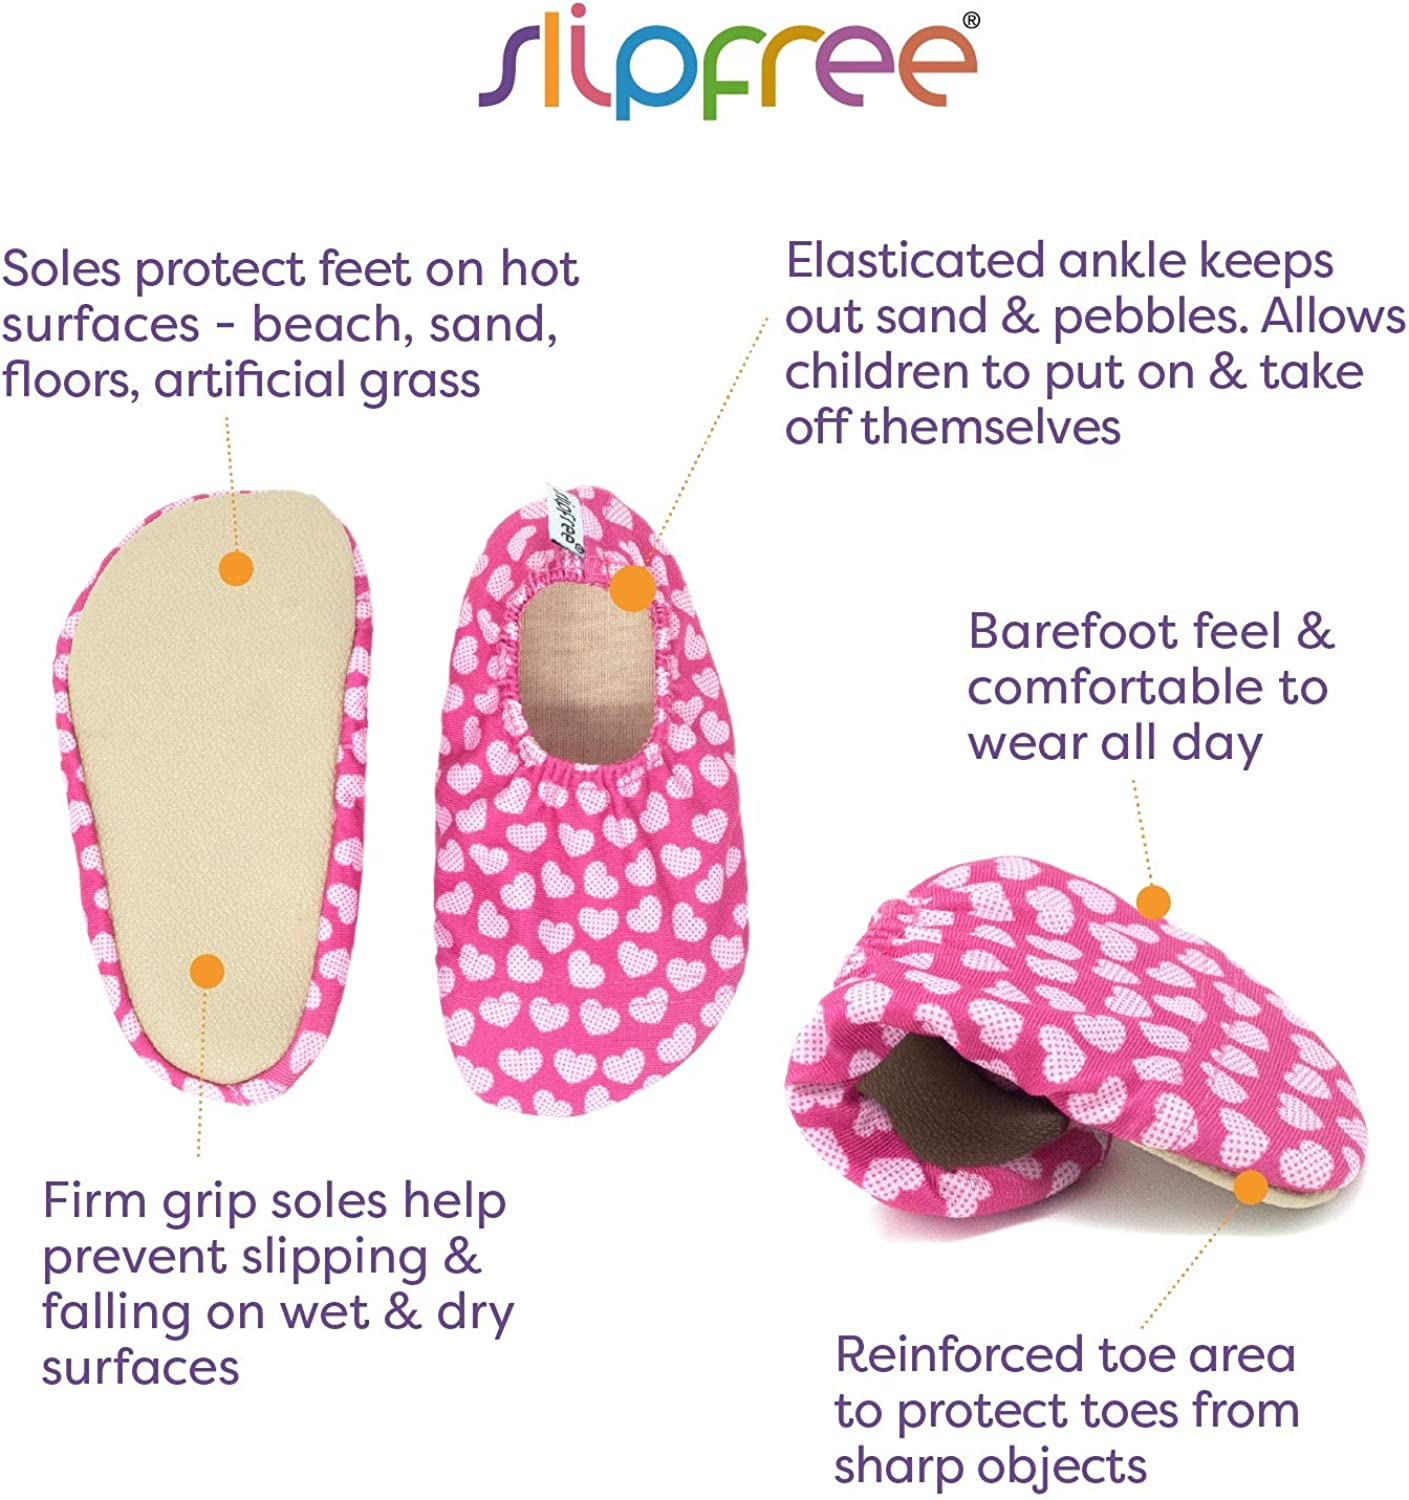 Girls Non-Slip UPF50+ Barefoot Swim Dancer Extra Small Slipfree Water Shoes for Beach Pool and Home